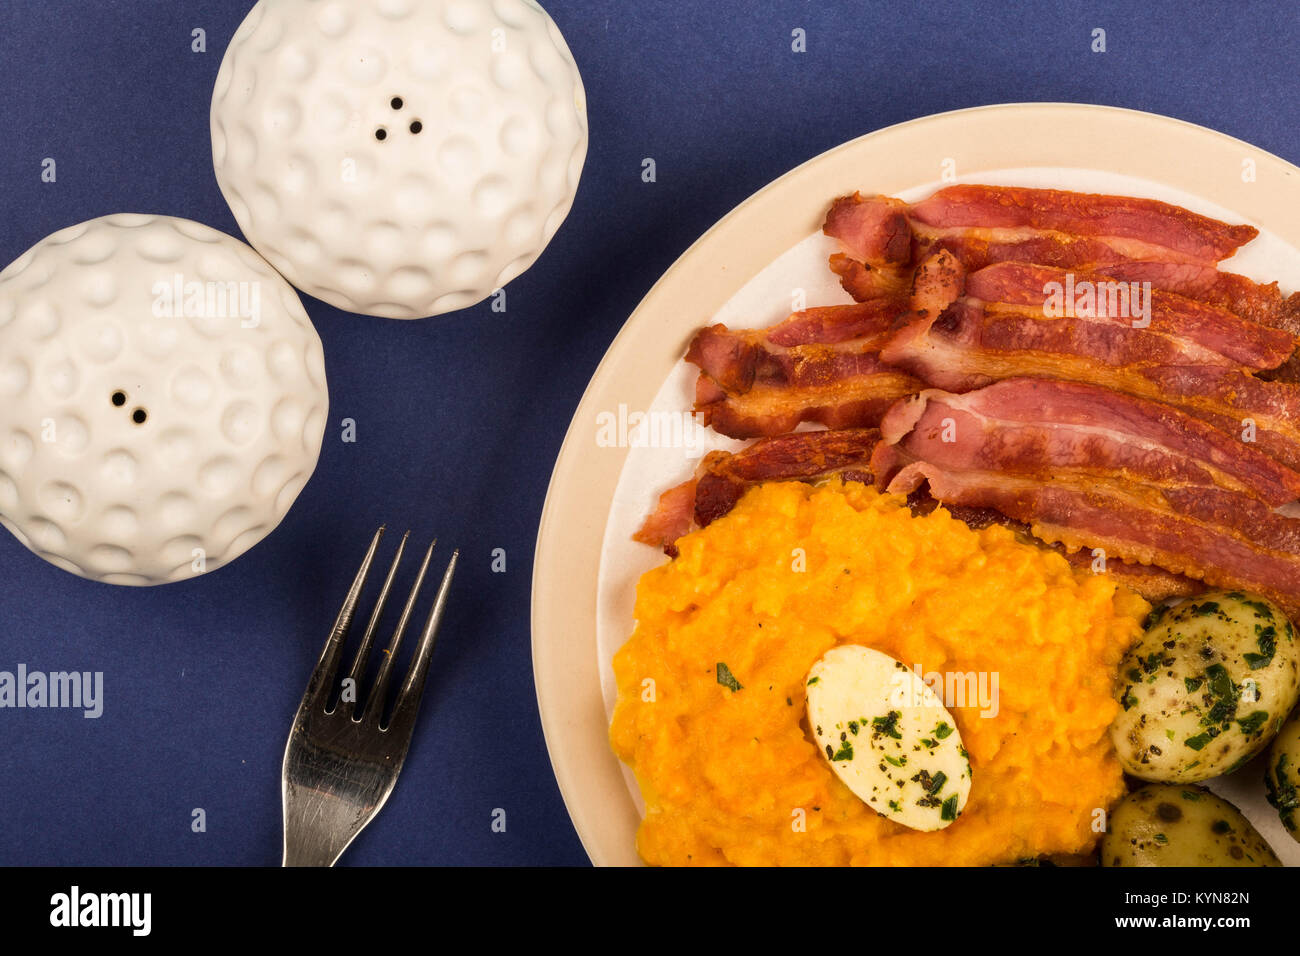 Norwegian Pork or Crispy Bacon With Mashed Swede and Boiled Potatoes Meal Against a Purple Background - Stock Image